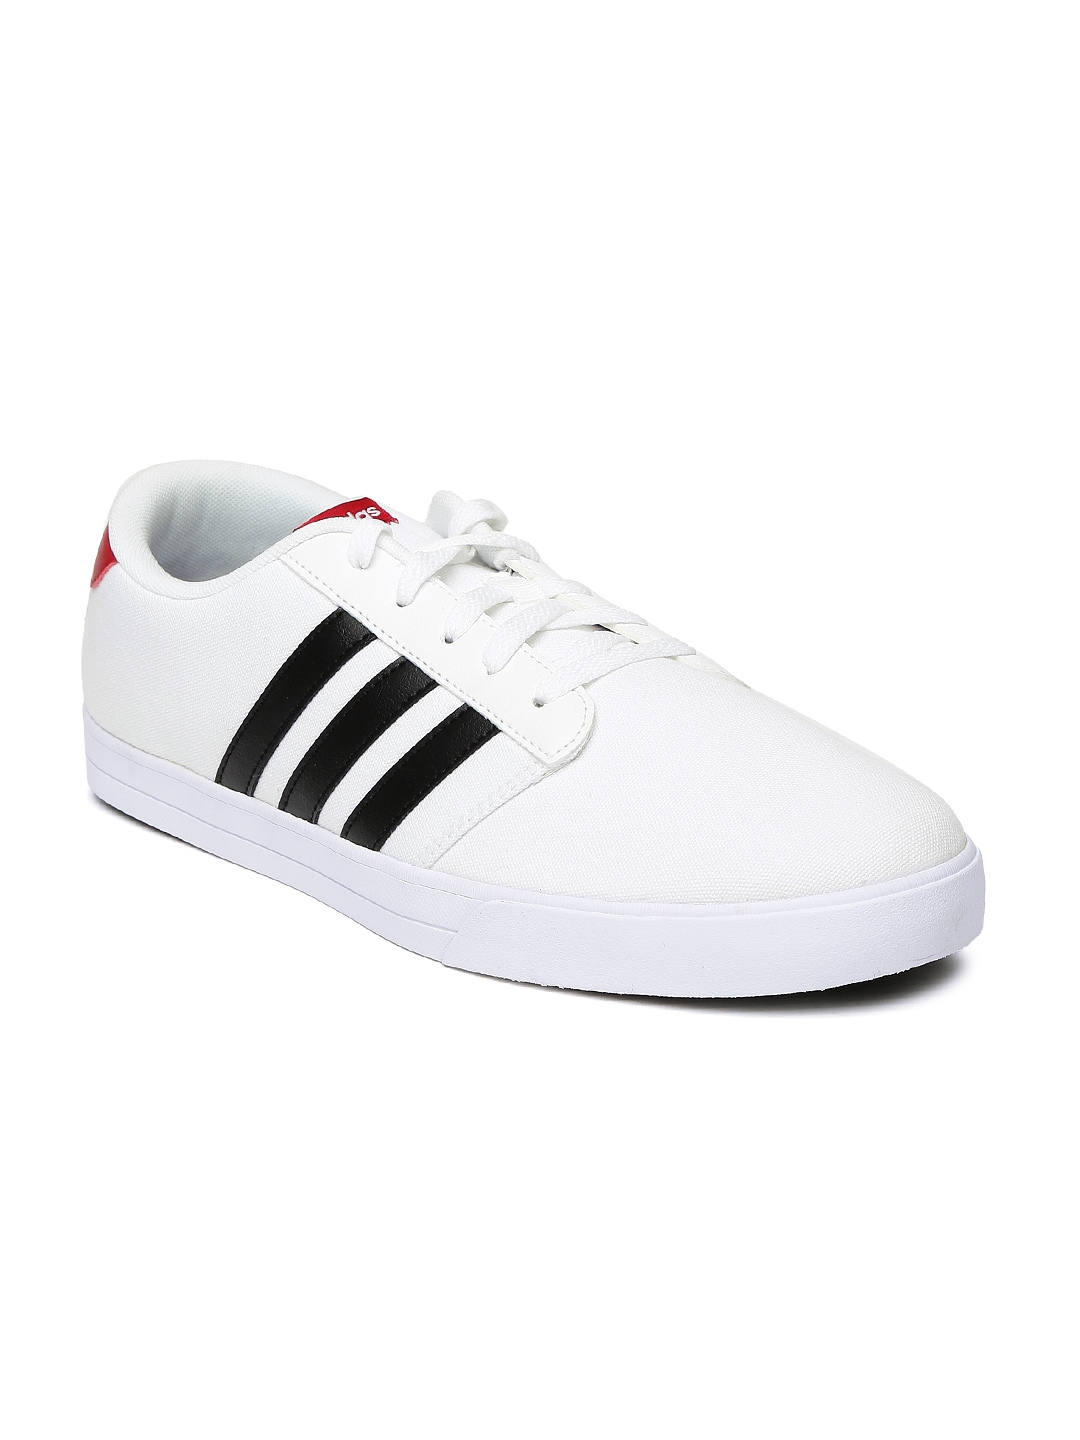 Neo White Navy Red Adidas: Buy Adidas NEO Men White Vs Skate Casual Shoes